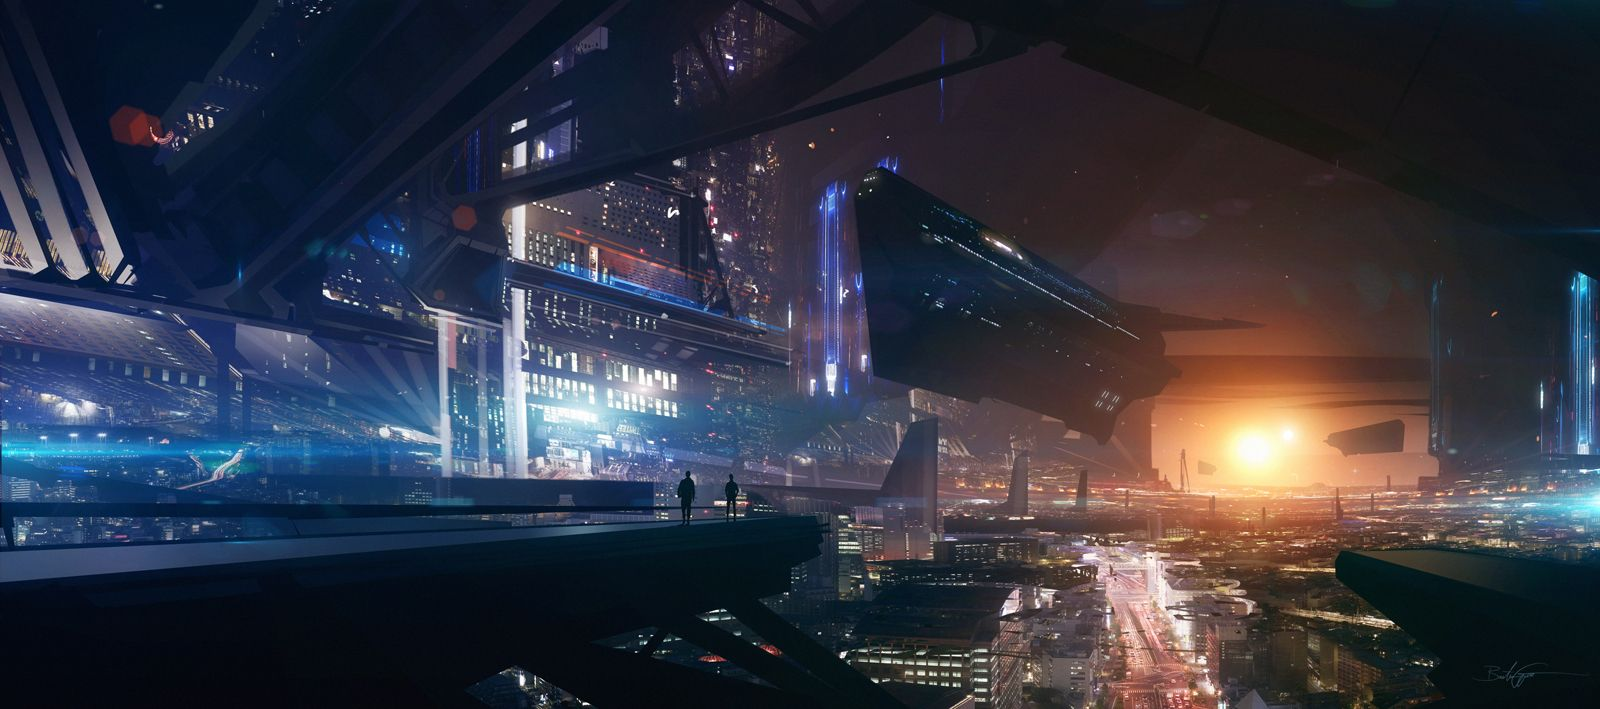 Cyberpunk, Future City, Cyber City, Futuristic City, Night ...